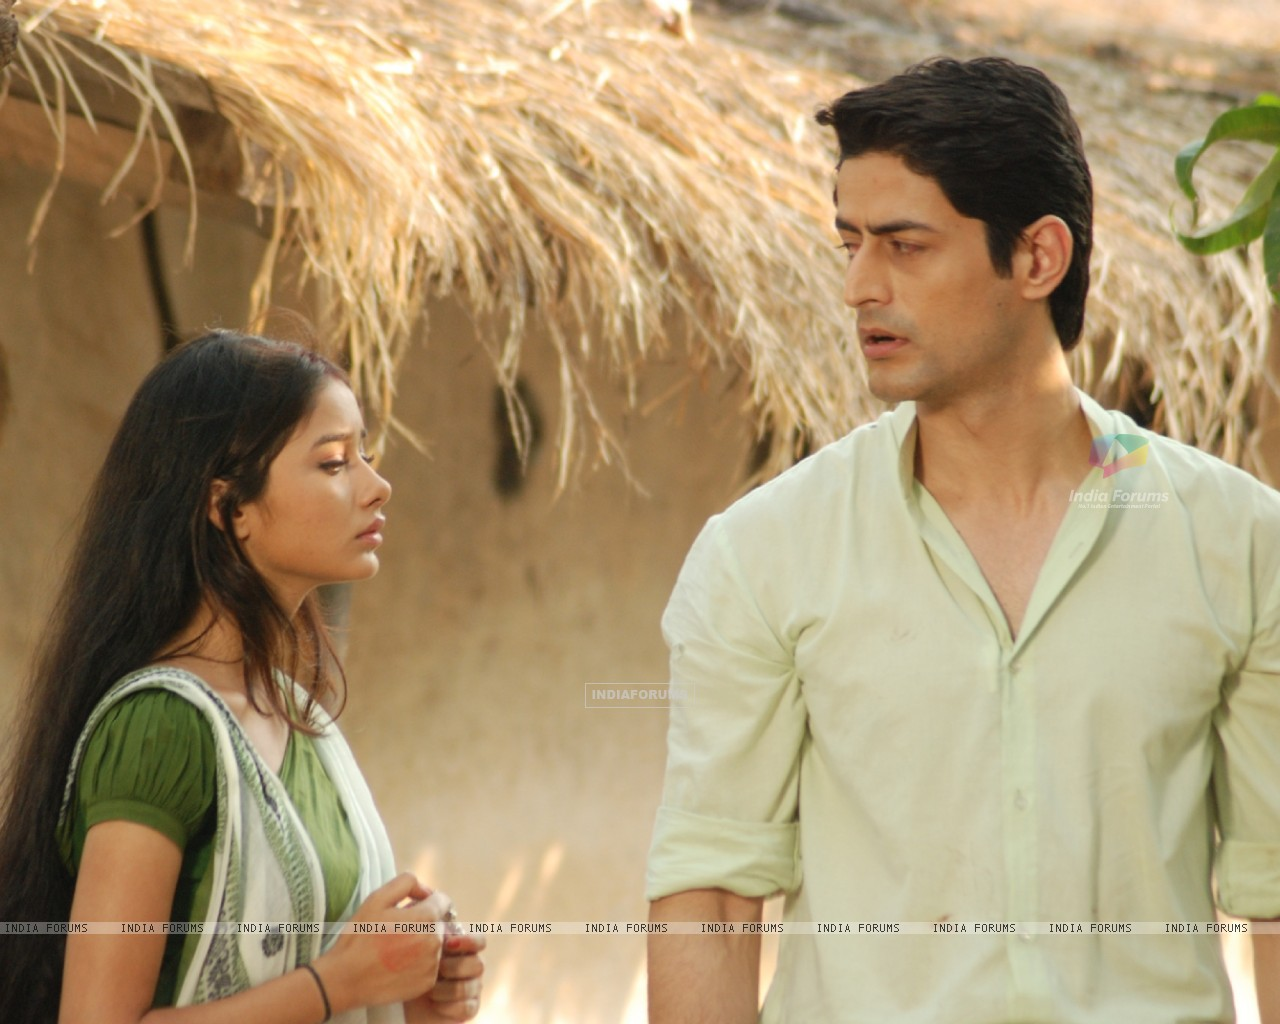 Still from tv show Ganga Kii Dheej (117229) size:1280x1024